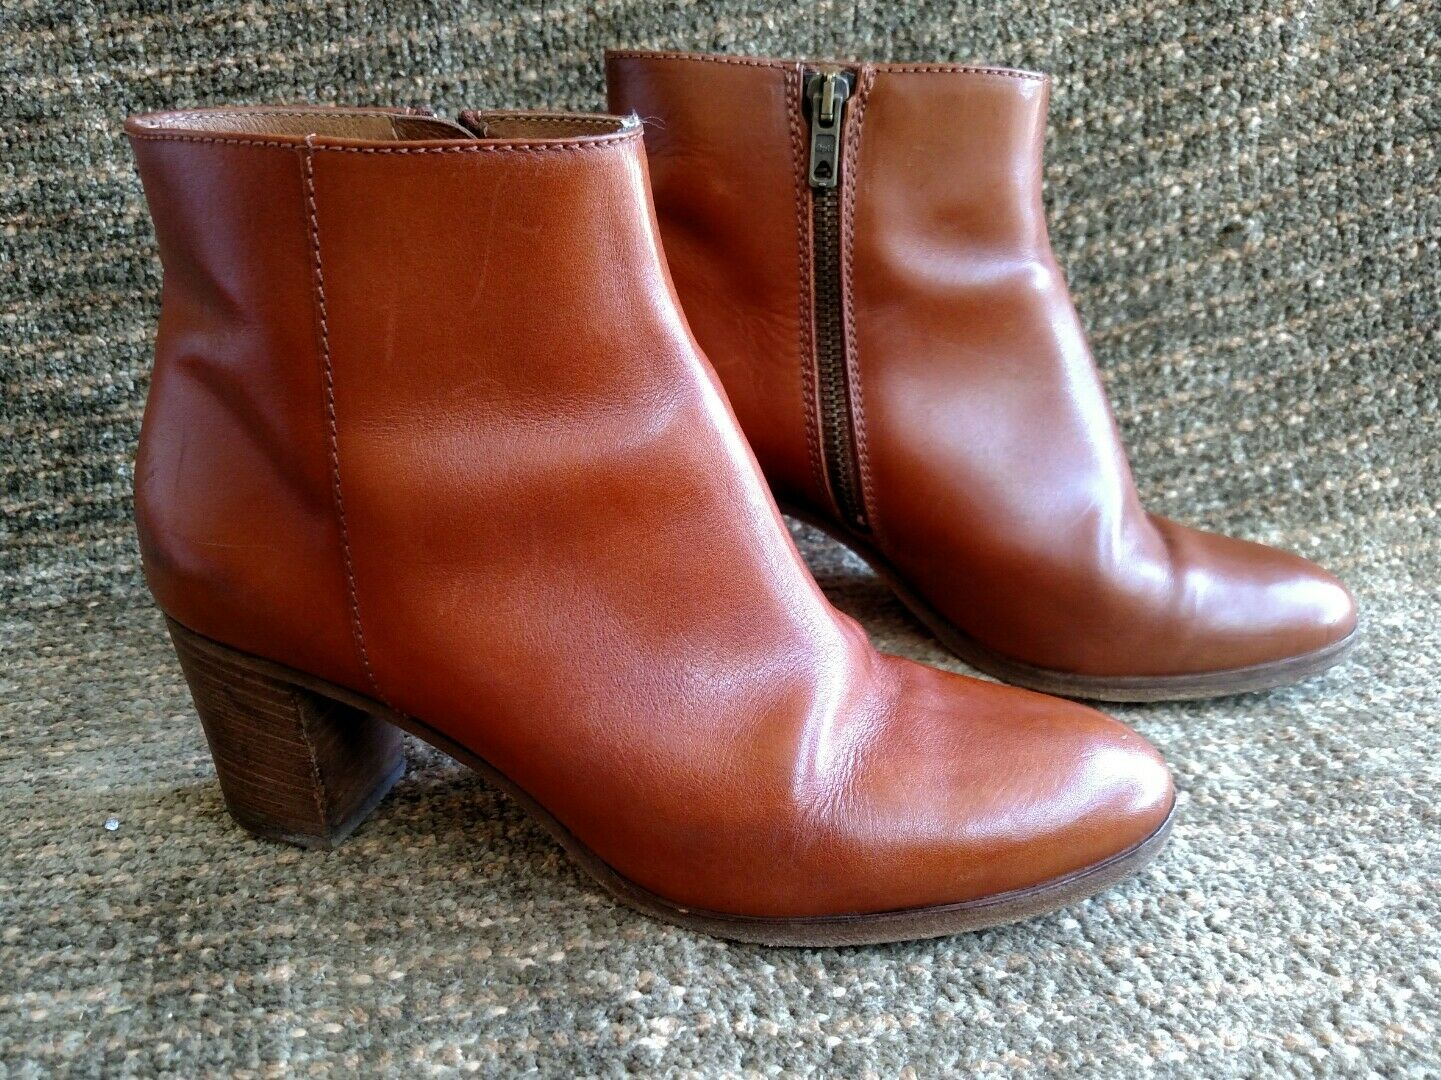 J.Crew Italian Saddle Leder high-heeled zip up ankle boots Größe 8